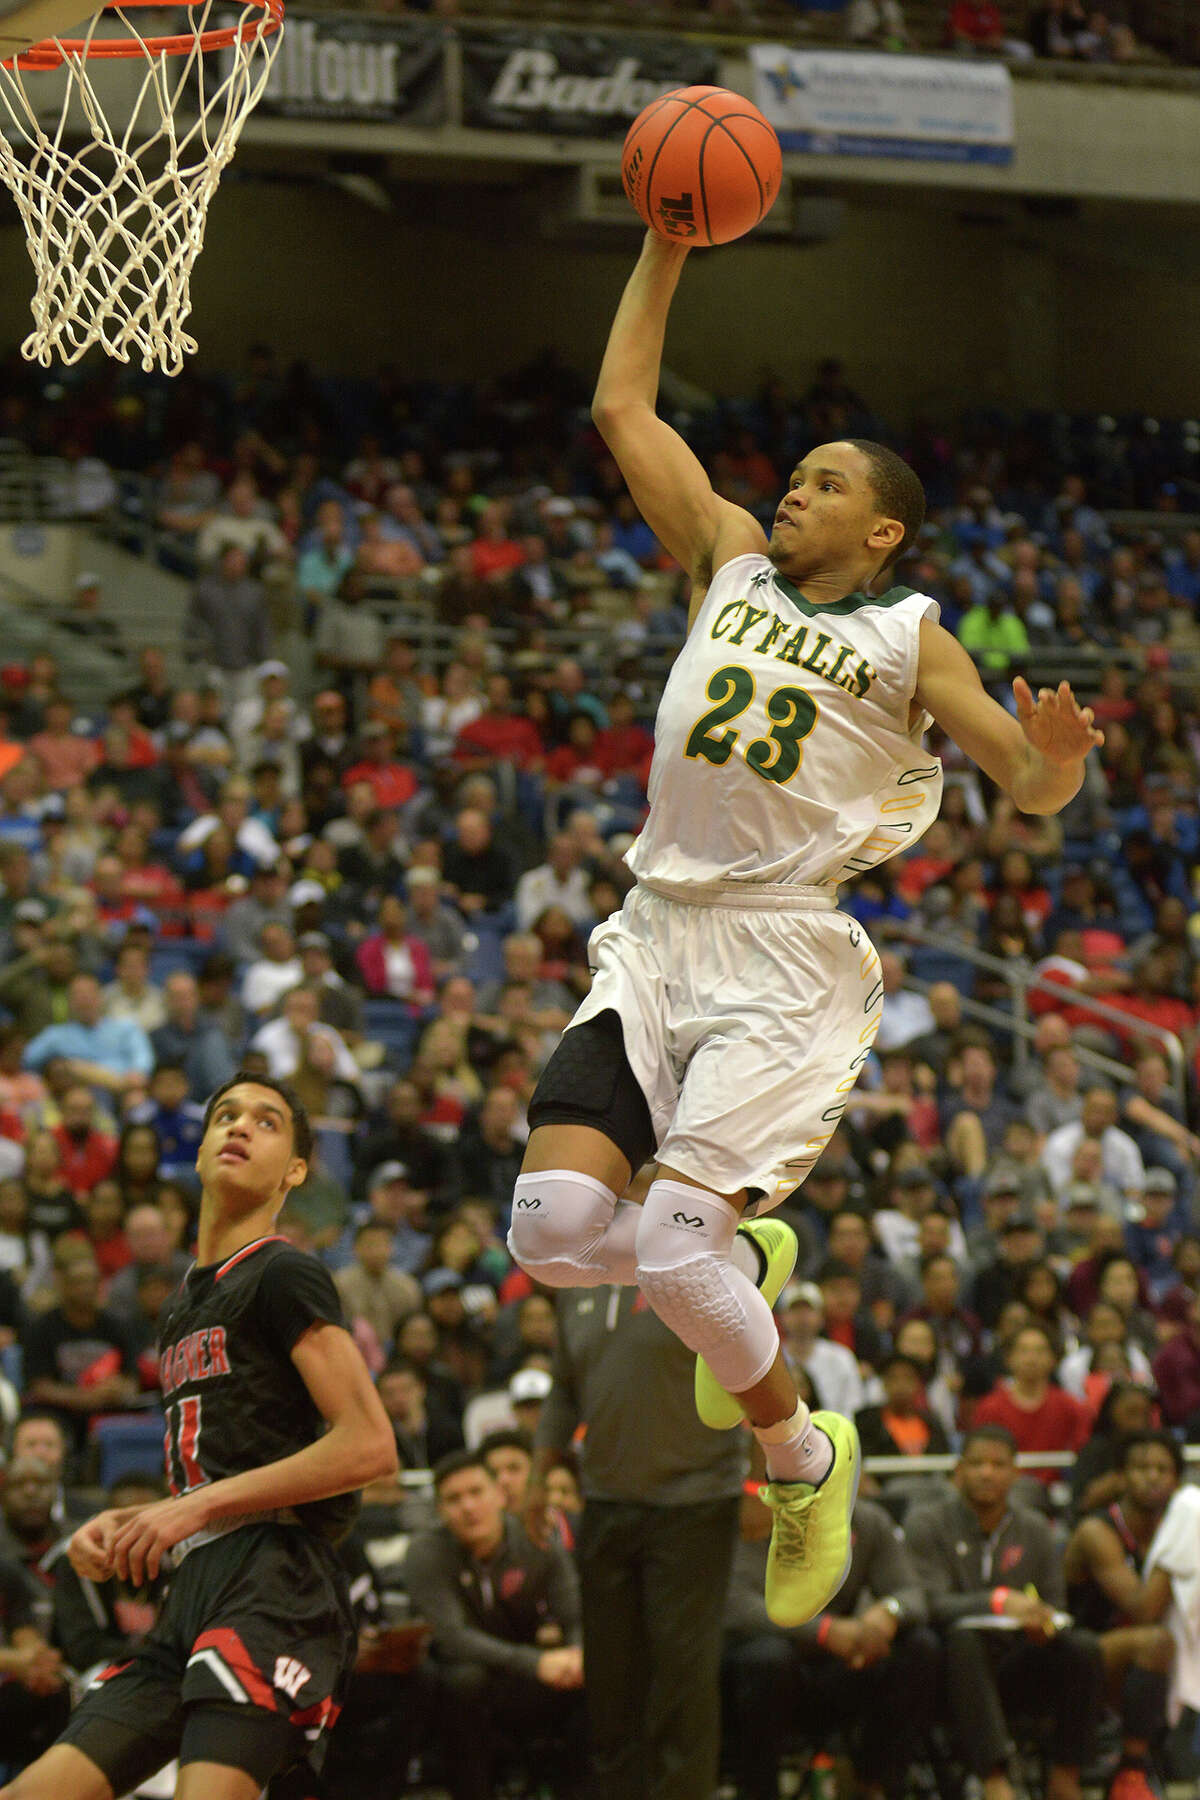 Cy Falls junior guard Nigel Hawkins (23) skies for a dunk against San Antonio Wagner during the 2nd quarter of their Class 6A state final at the Alamodome in San Antonio on Saturday, March 11, 2017. (Photo by Jerry Baker/Freelance)